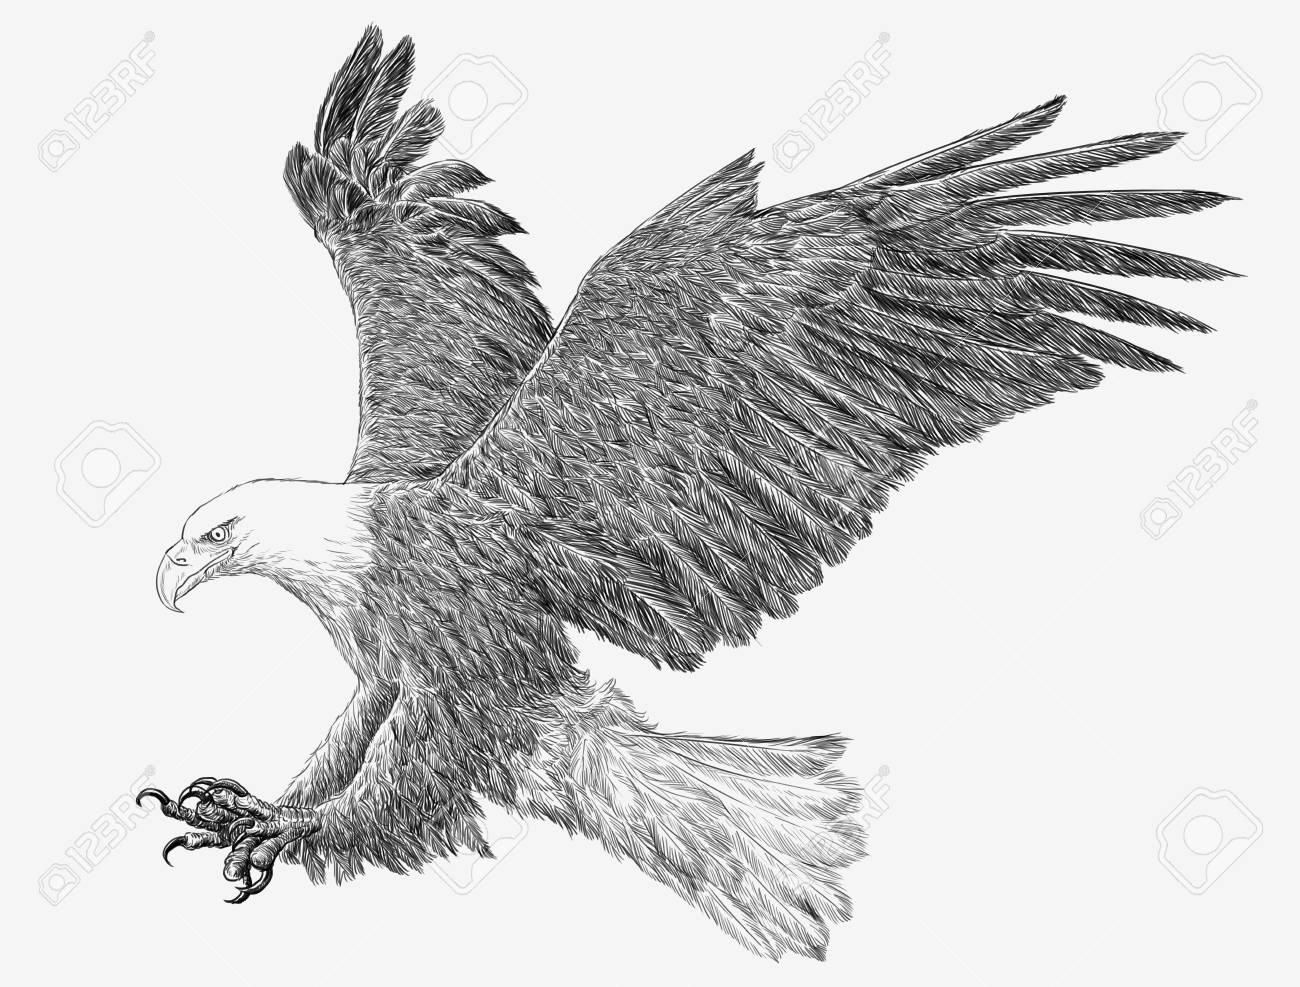 Bald eagle flying swoop hand draw monochrome on white background illustration stock illustration 89777013